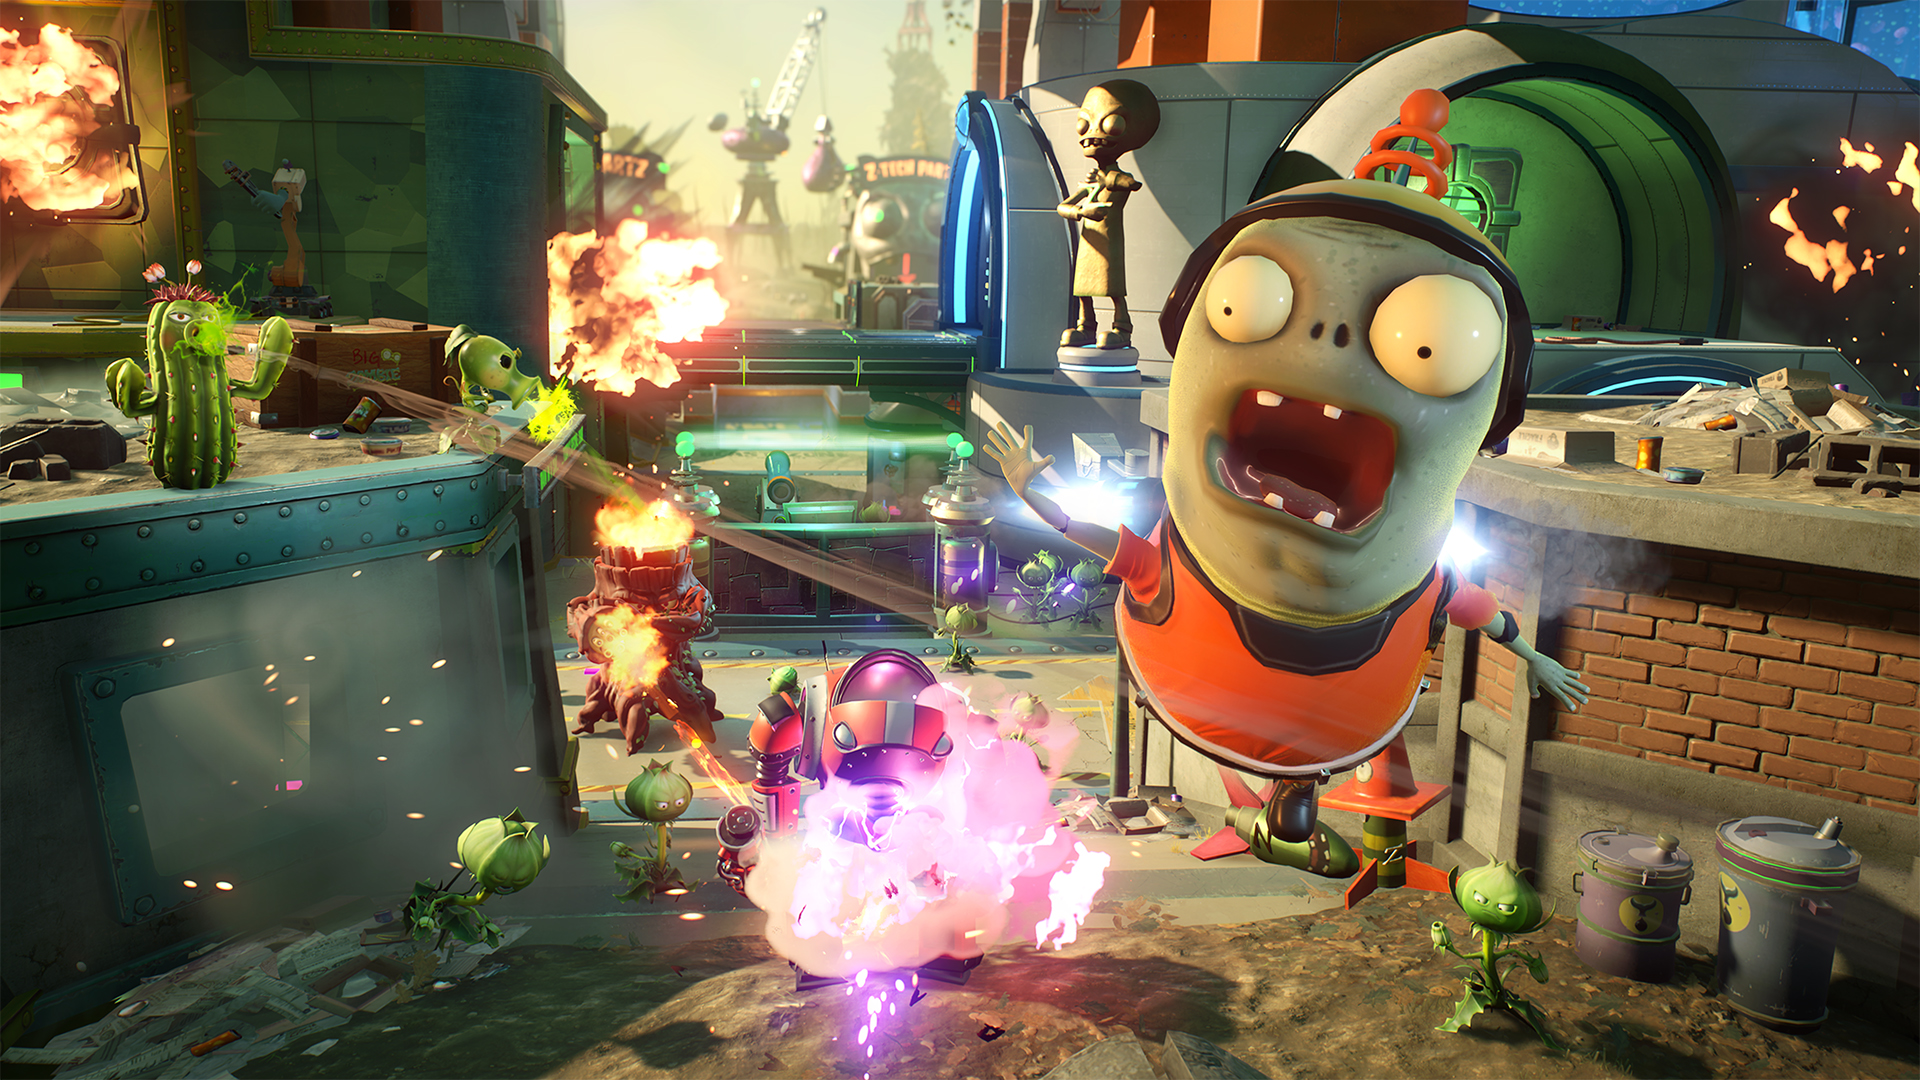 There S A Decent Game Somewhere In Plants Vs Zombies Garden Warfare 2 Ars Technica